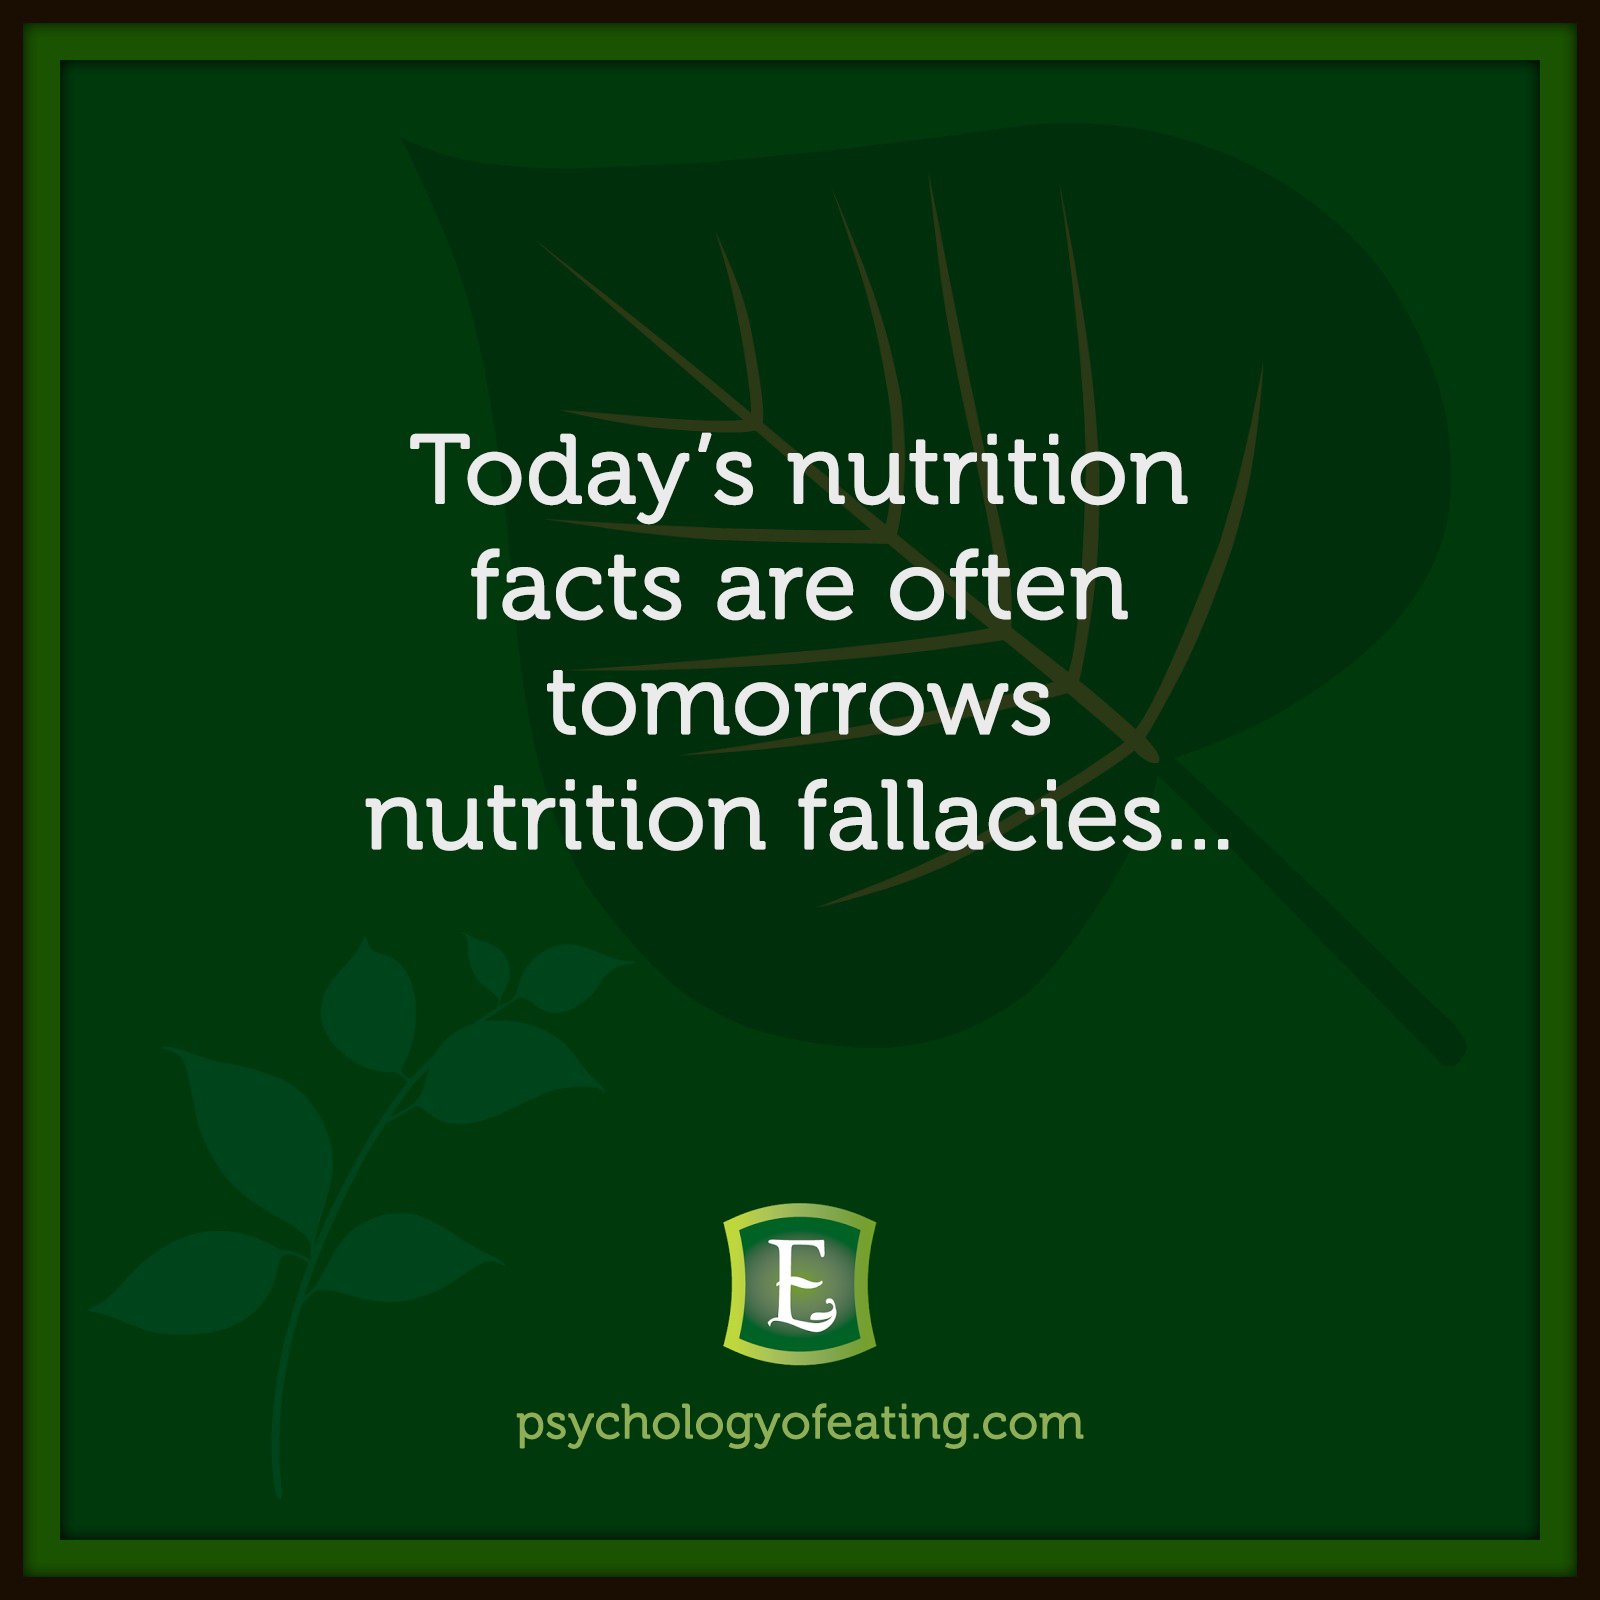 Today's nutrition facts are often tomorrows nutrition fallacies… #health #nutrition #eatingpsychology #IPE